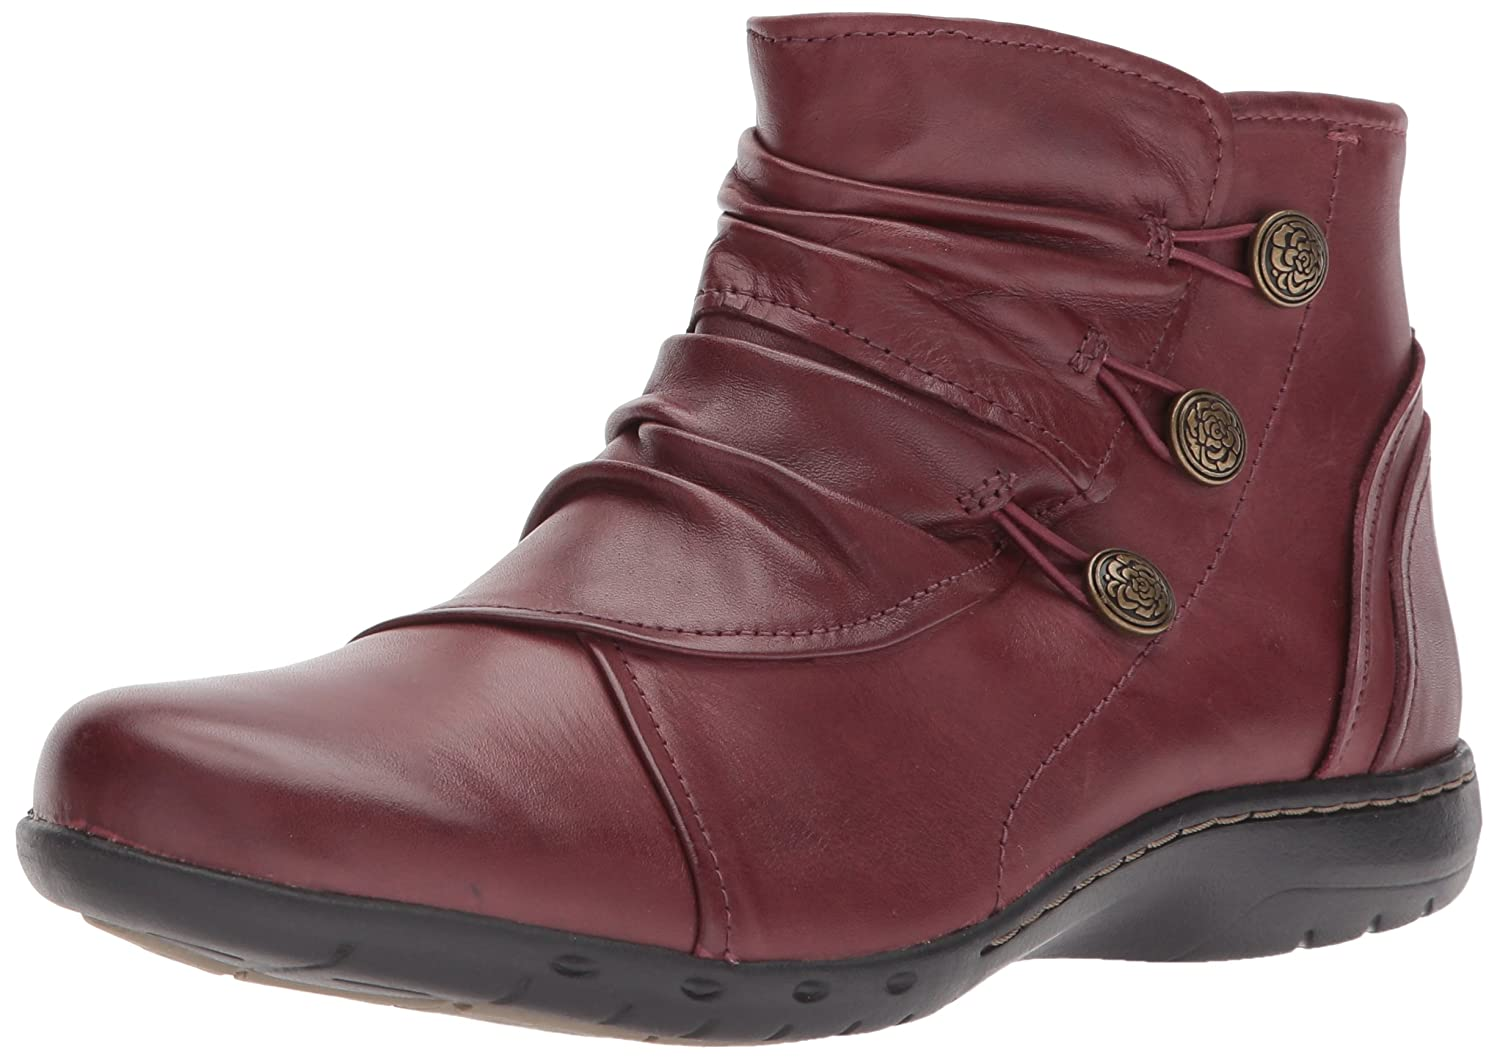 Cobb Hill Women's Penfield Boot B01MZDJ6NL 6 B(M) US|Bordeaux Leather